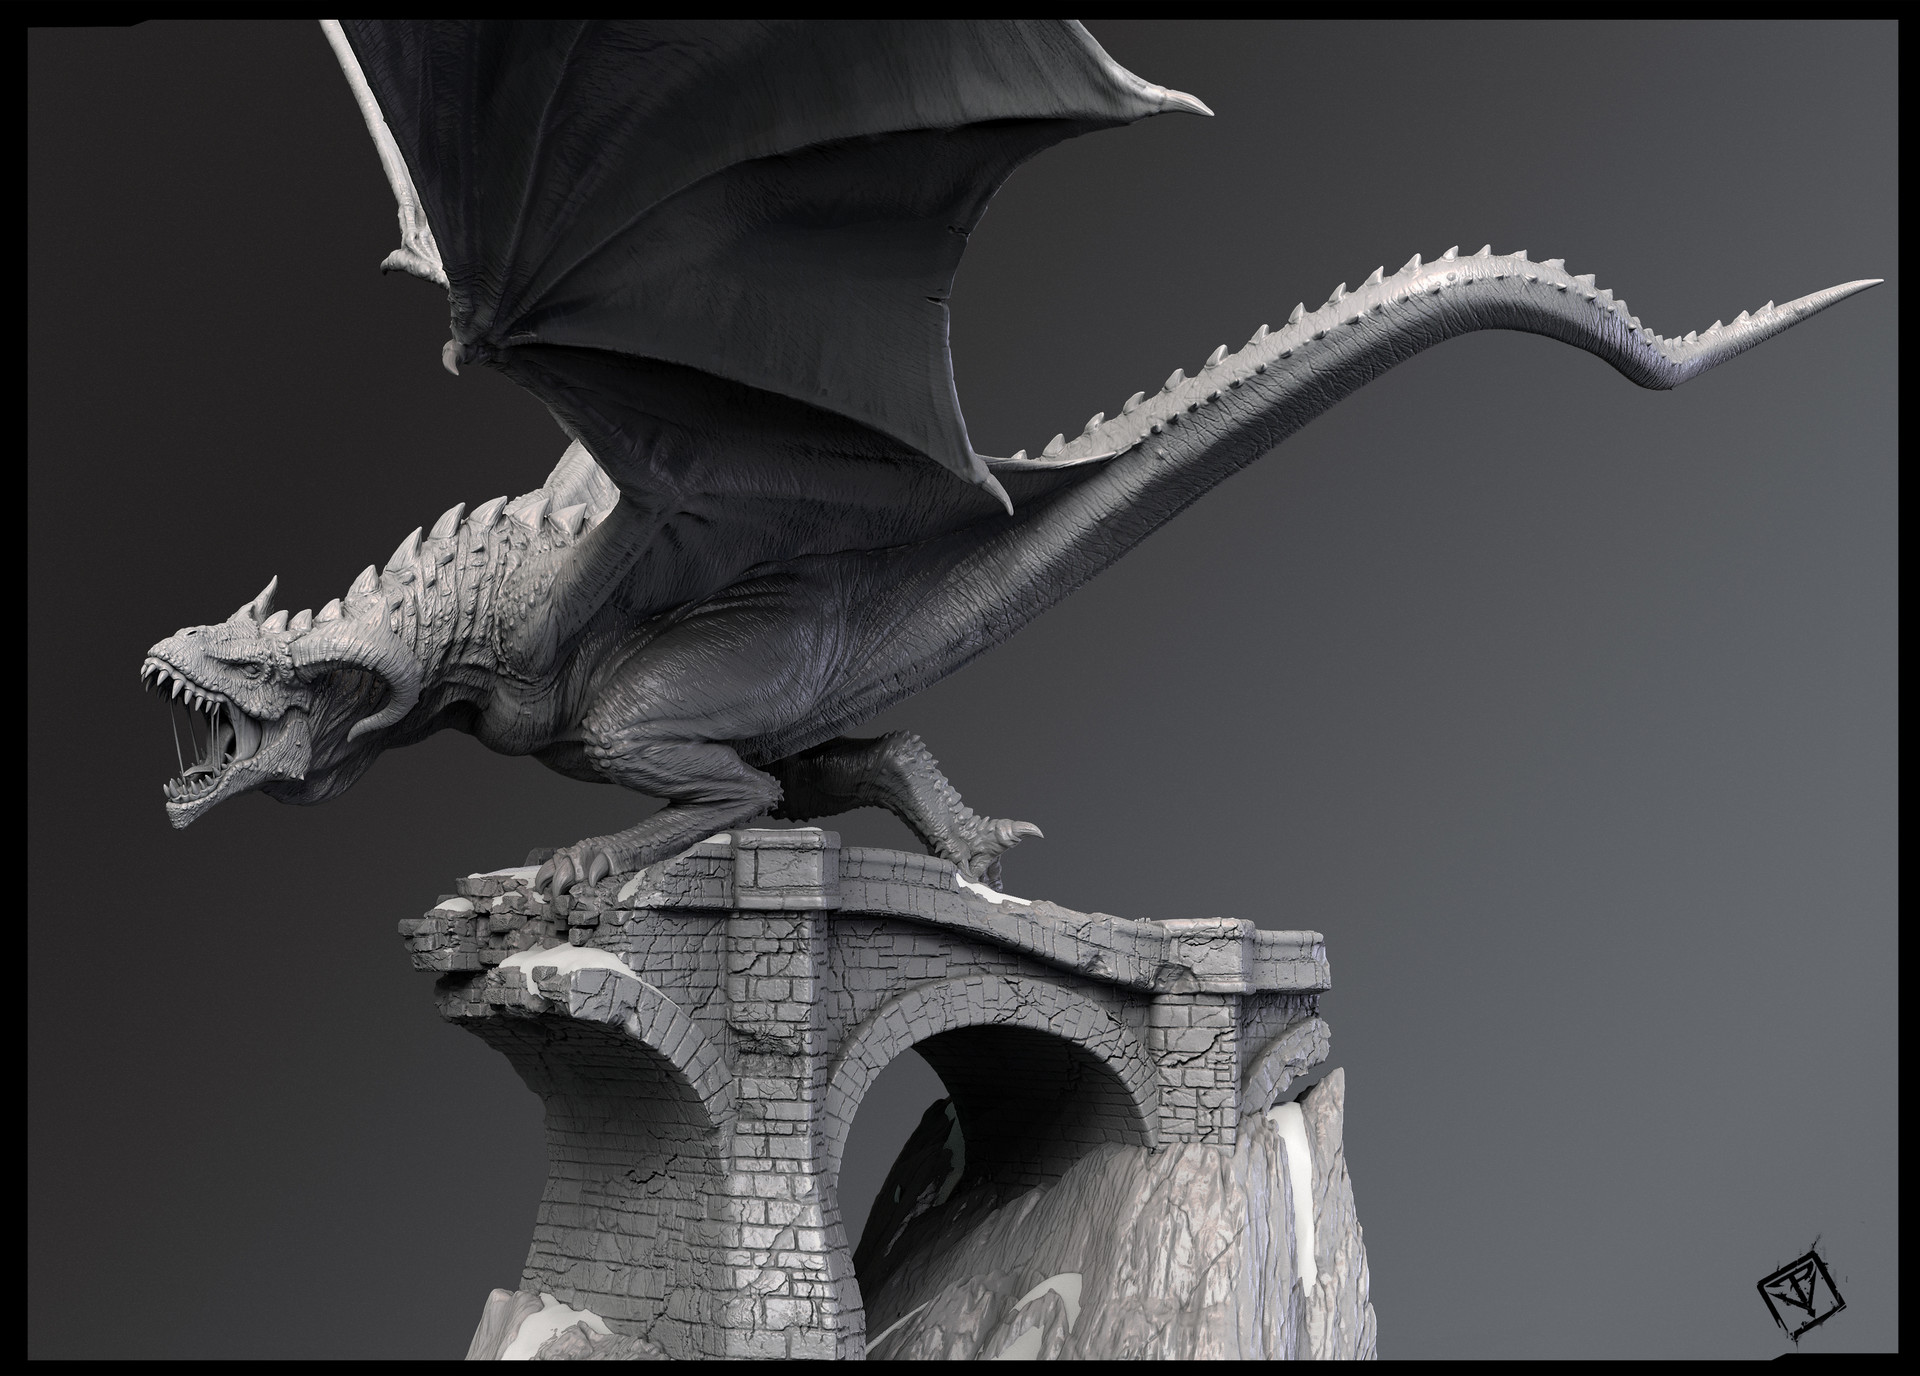 Pablo vicentin new dragon scene 04